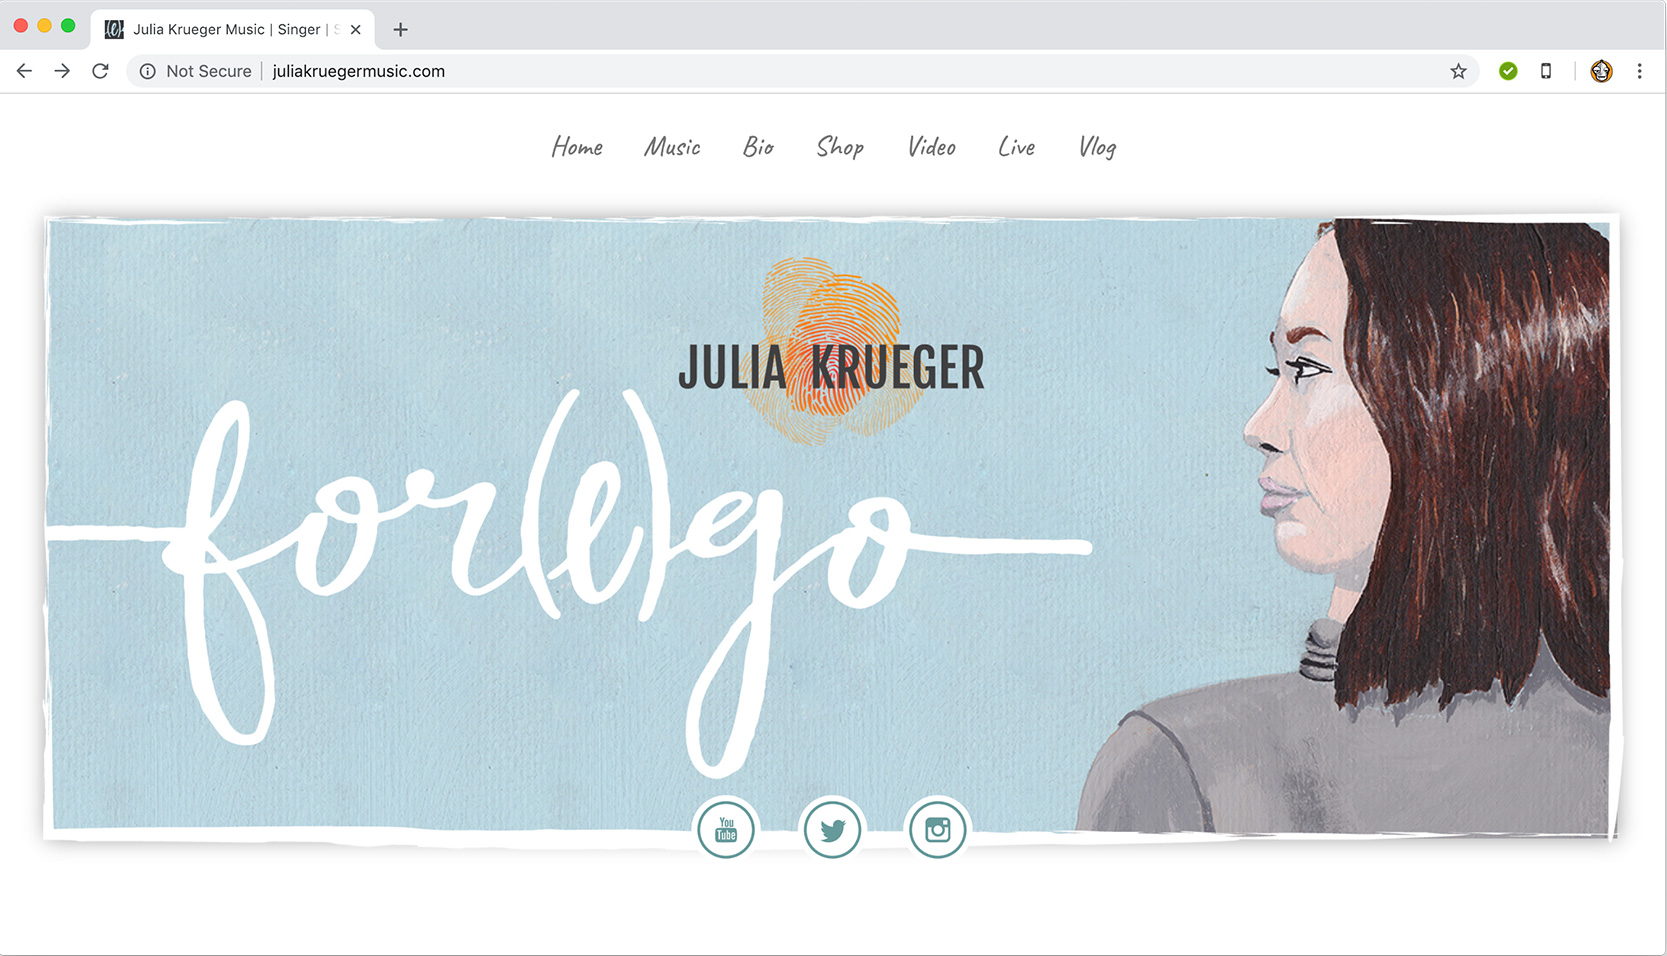 Julia Krueger Website Landing Page